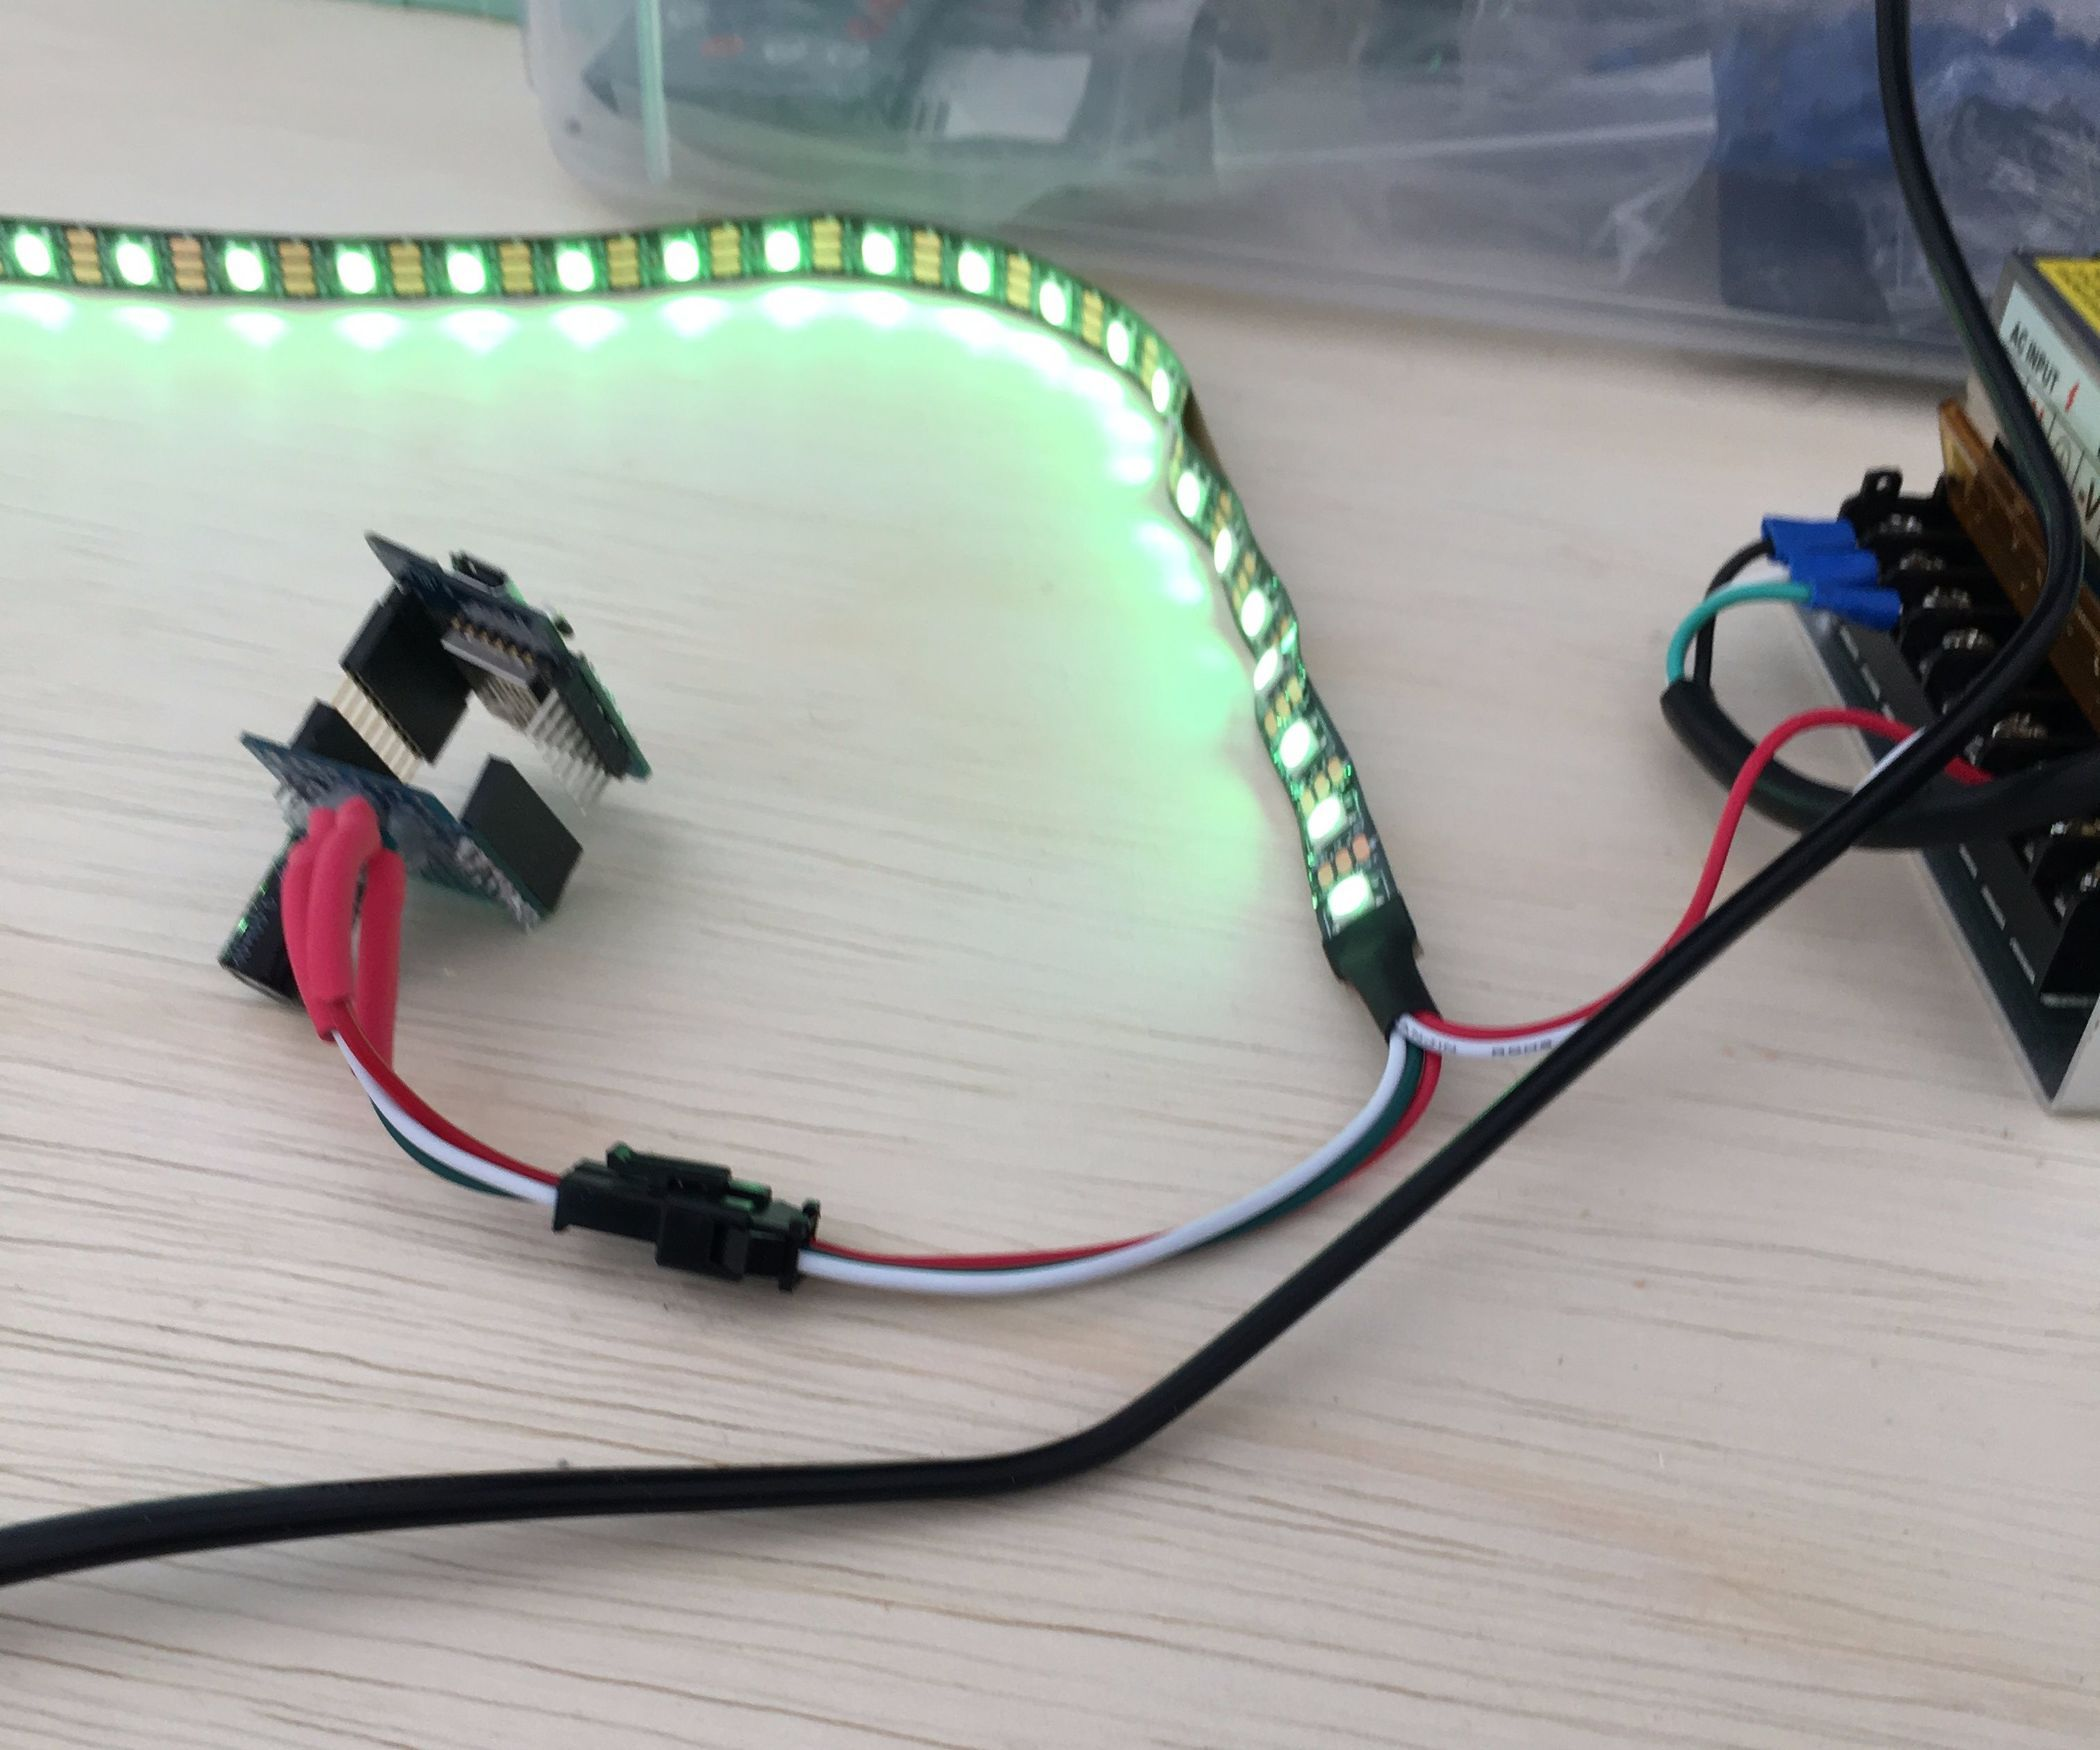 Esp8266 Led Strip Mqtt Control Lights Ws2812 Pinterest Vertical Etching Tank For Diy Pcb Electronicslab I Always Wanted Under Bed So That Can The Mood Or Even On Family Room Underneath Tv To Get Very Subtle Lighting